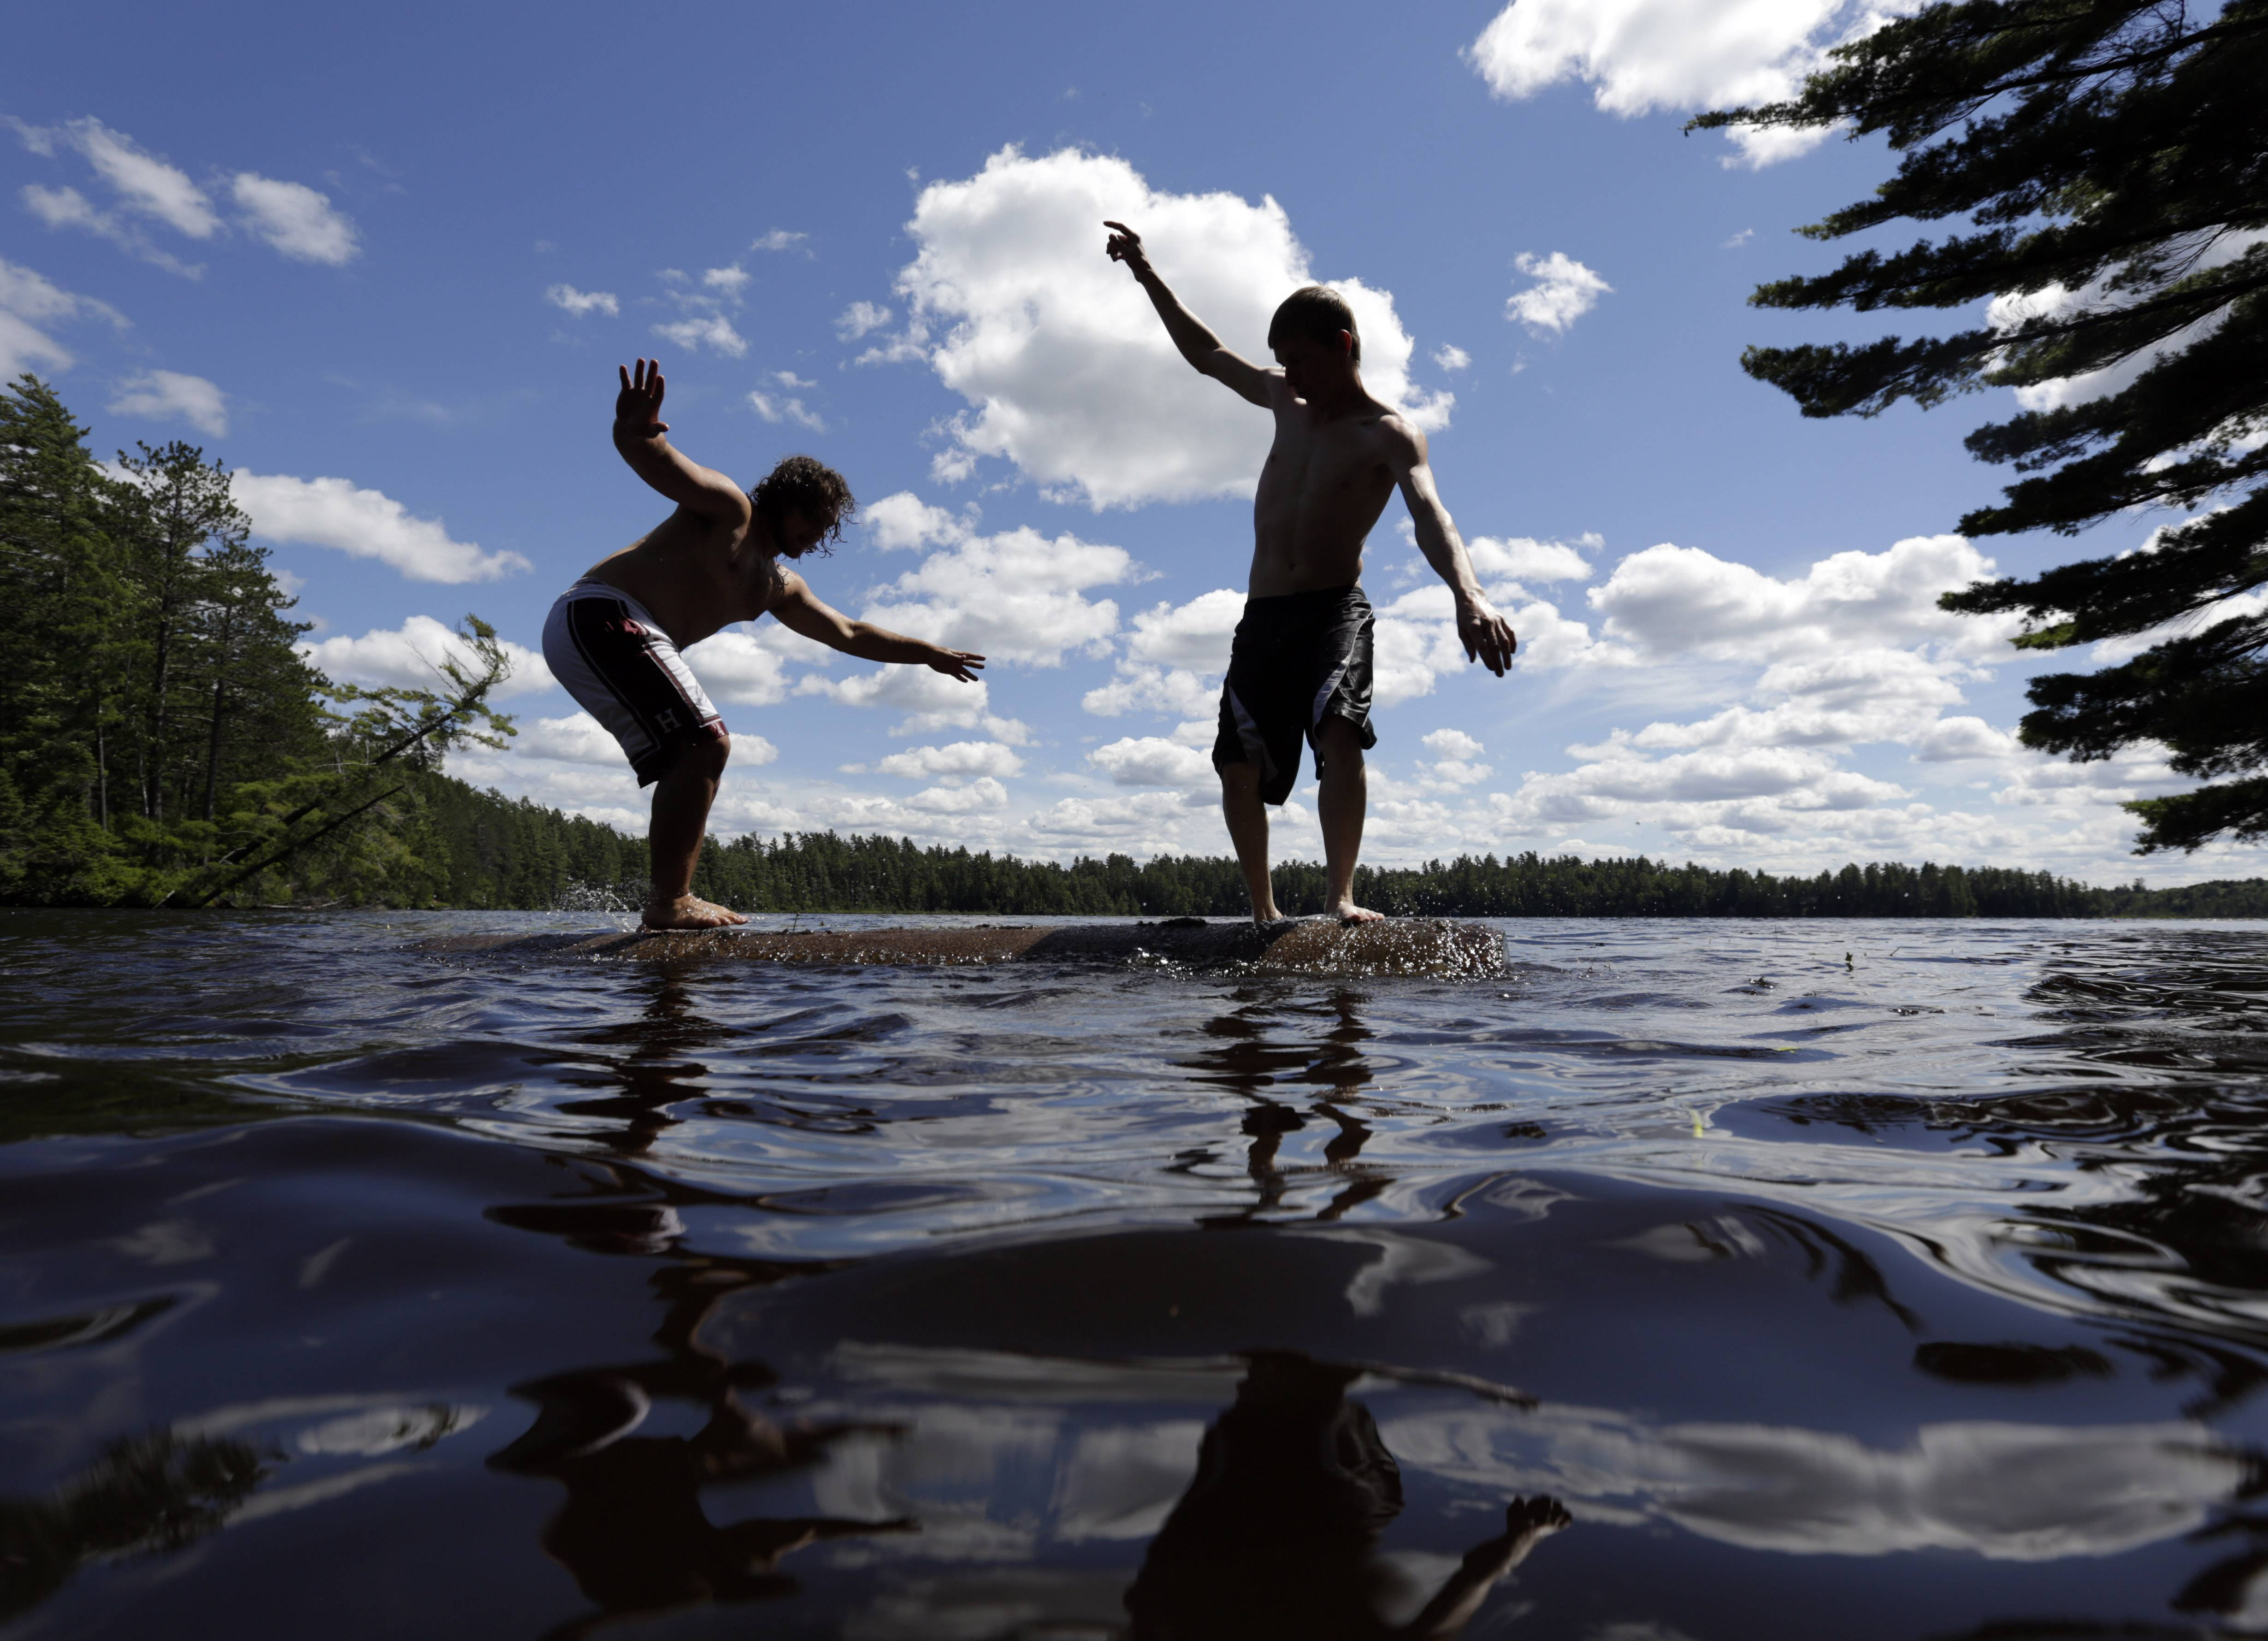 Ben Boschetto of Wayland, Mass., left, and Wes Bell of Fort Ann, N.Y., try to force each other into the water while log birling on Lower St. Regis Lake at the Adirondack Woodsmen's School at Paul Smith's College in Paul Smiths, N.Y.